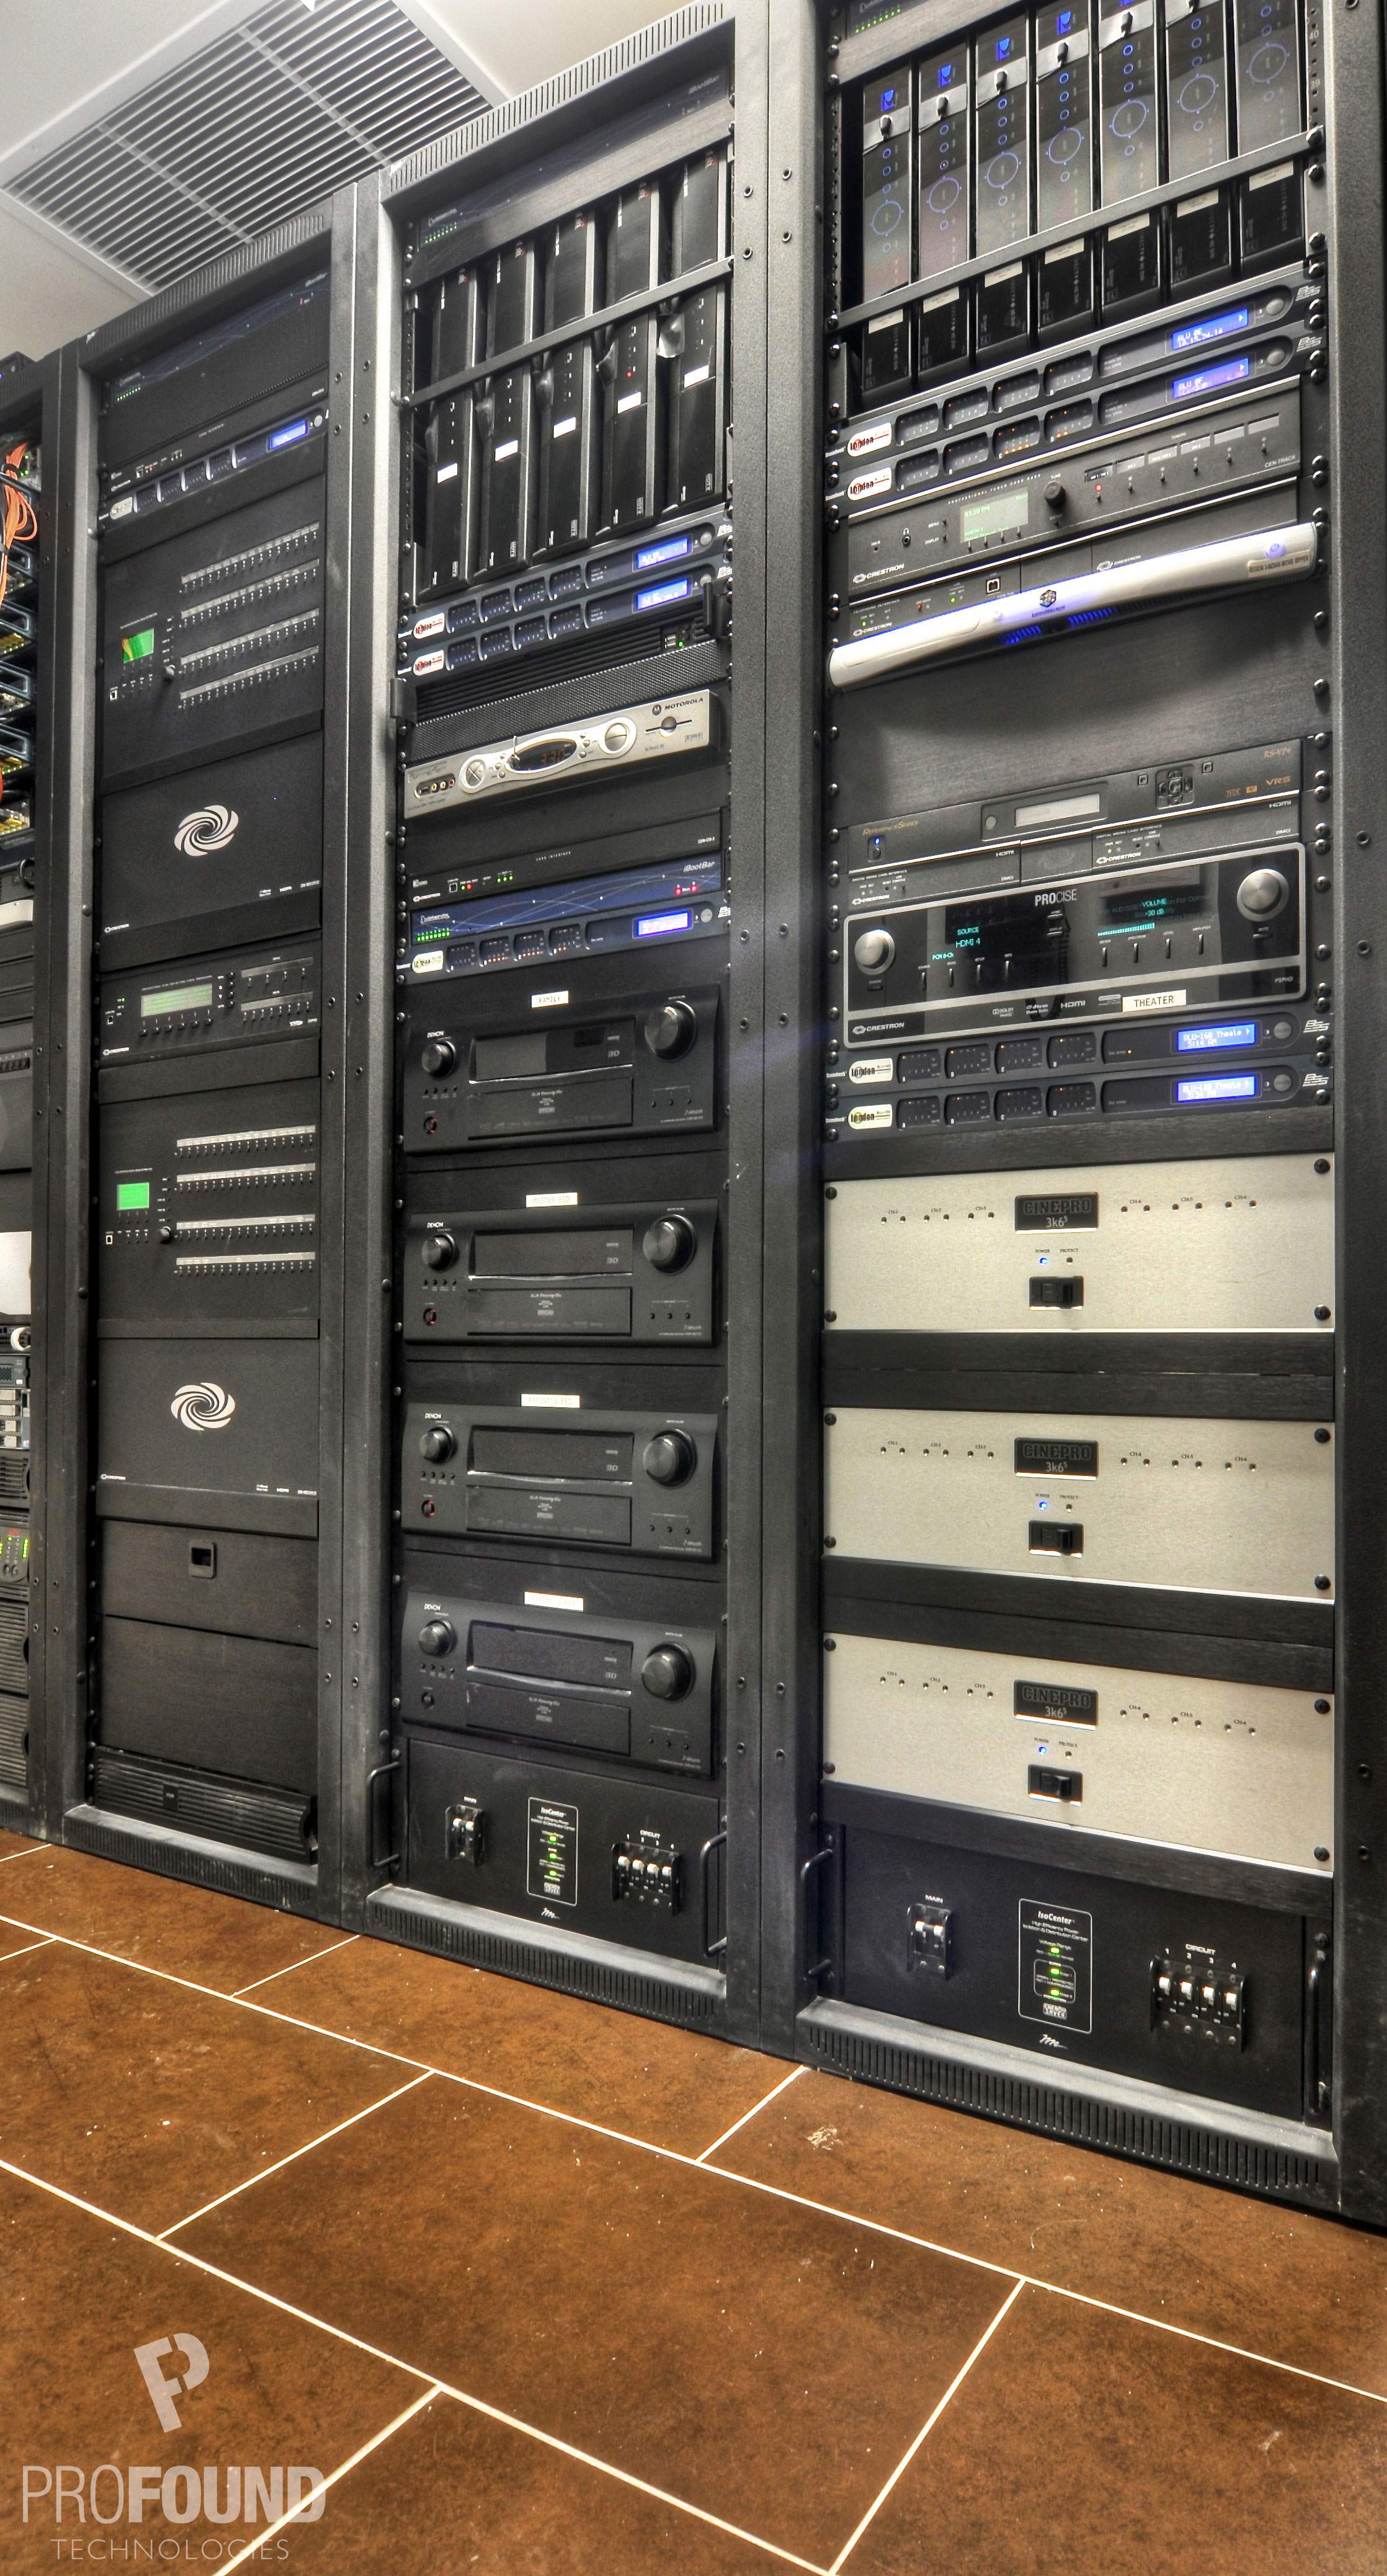 Right Angle View of Three Side by Side Server Racks